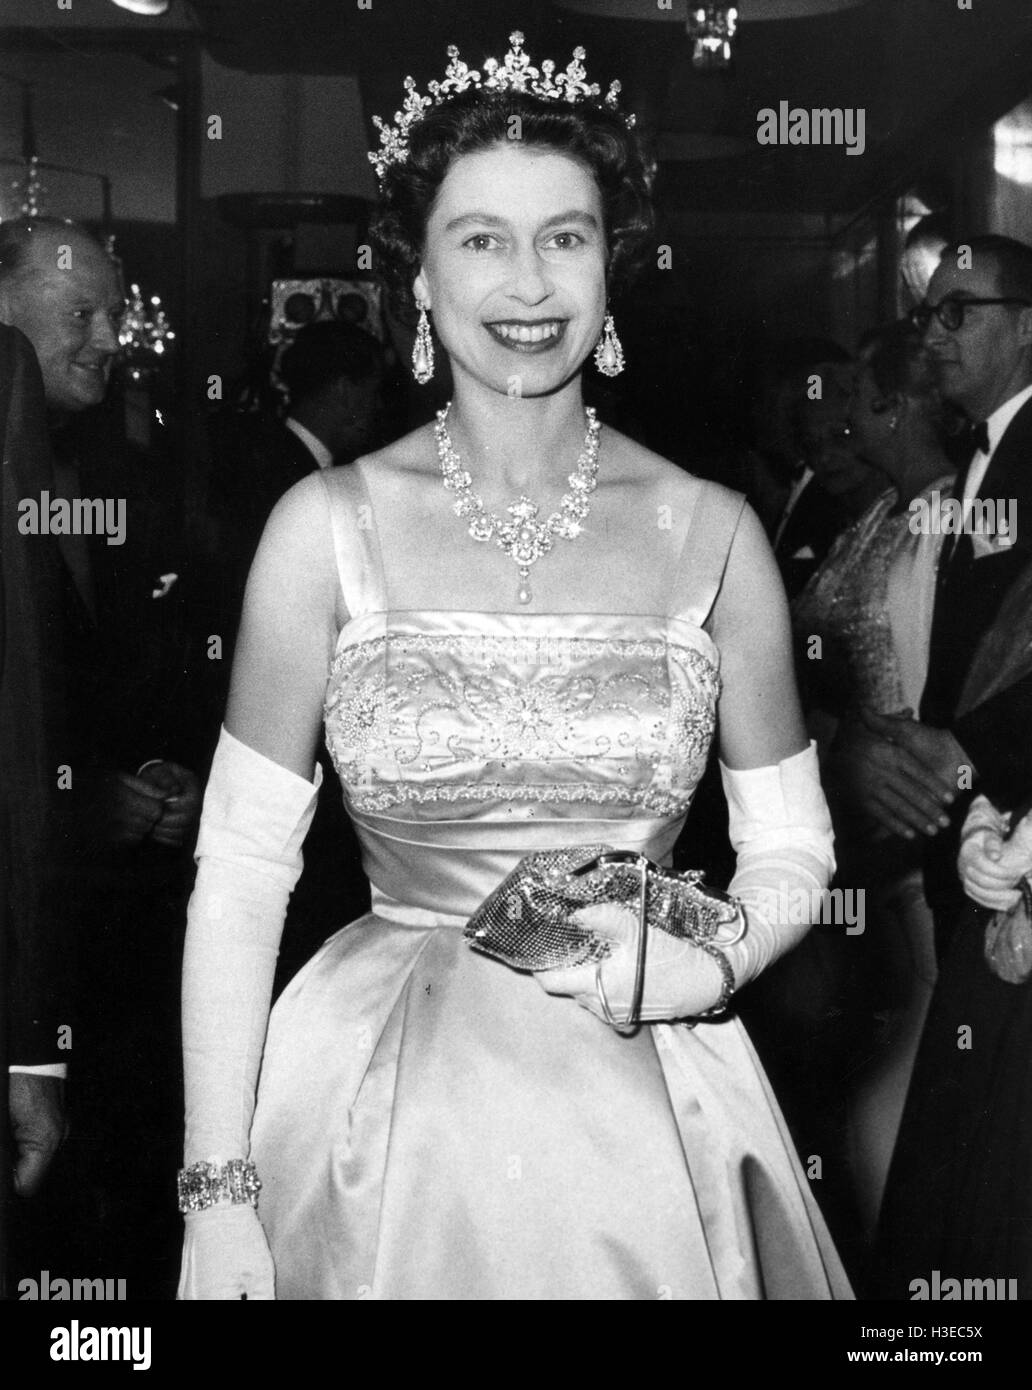 QUEEN ELIZABETH II at a film premiere about 1955 - Stock Image